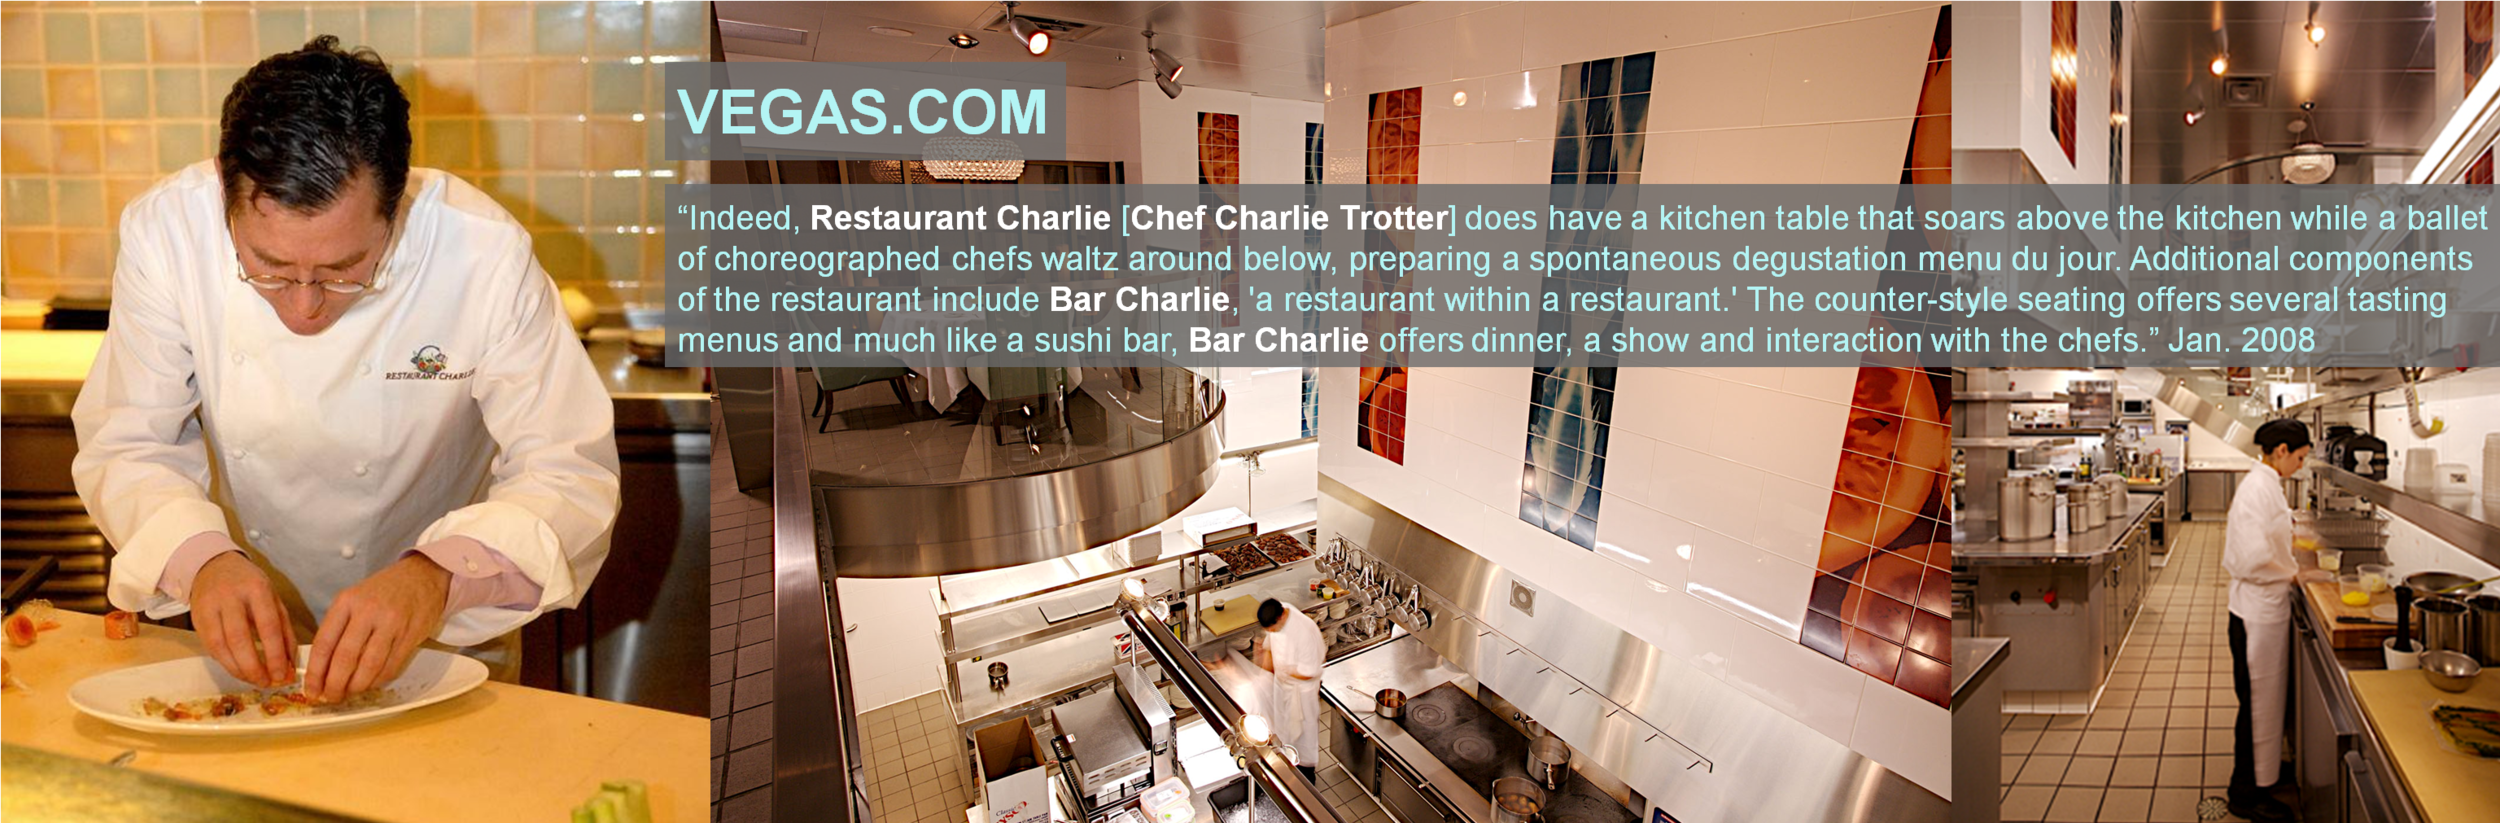 Vegas.com January 2008 Restaurant Charlie.png